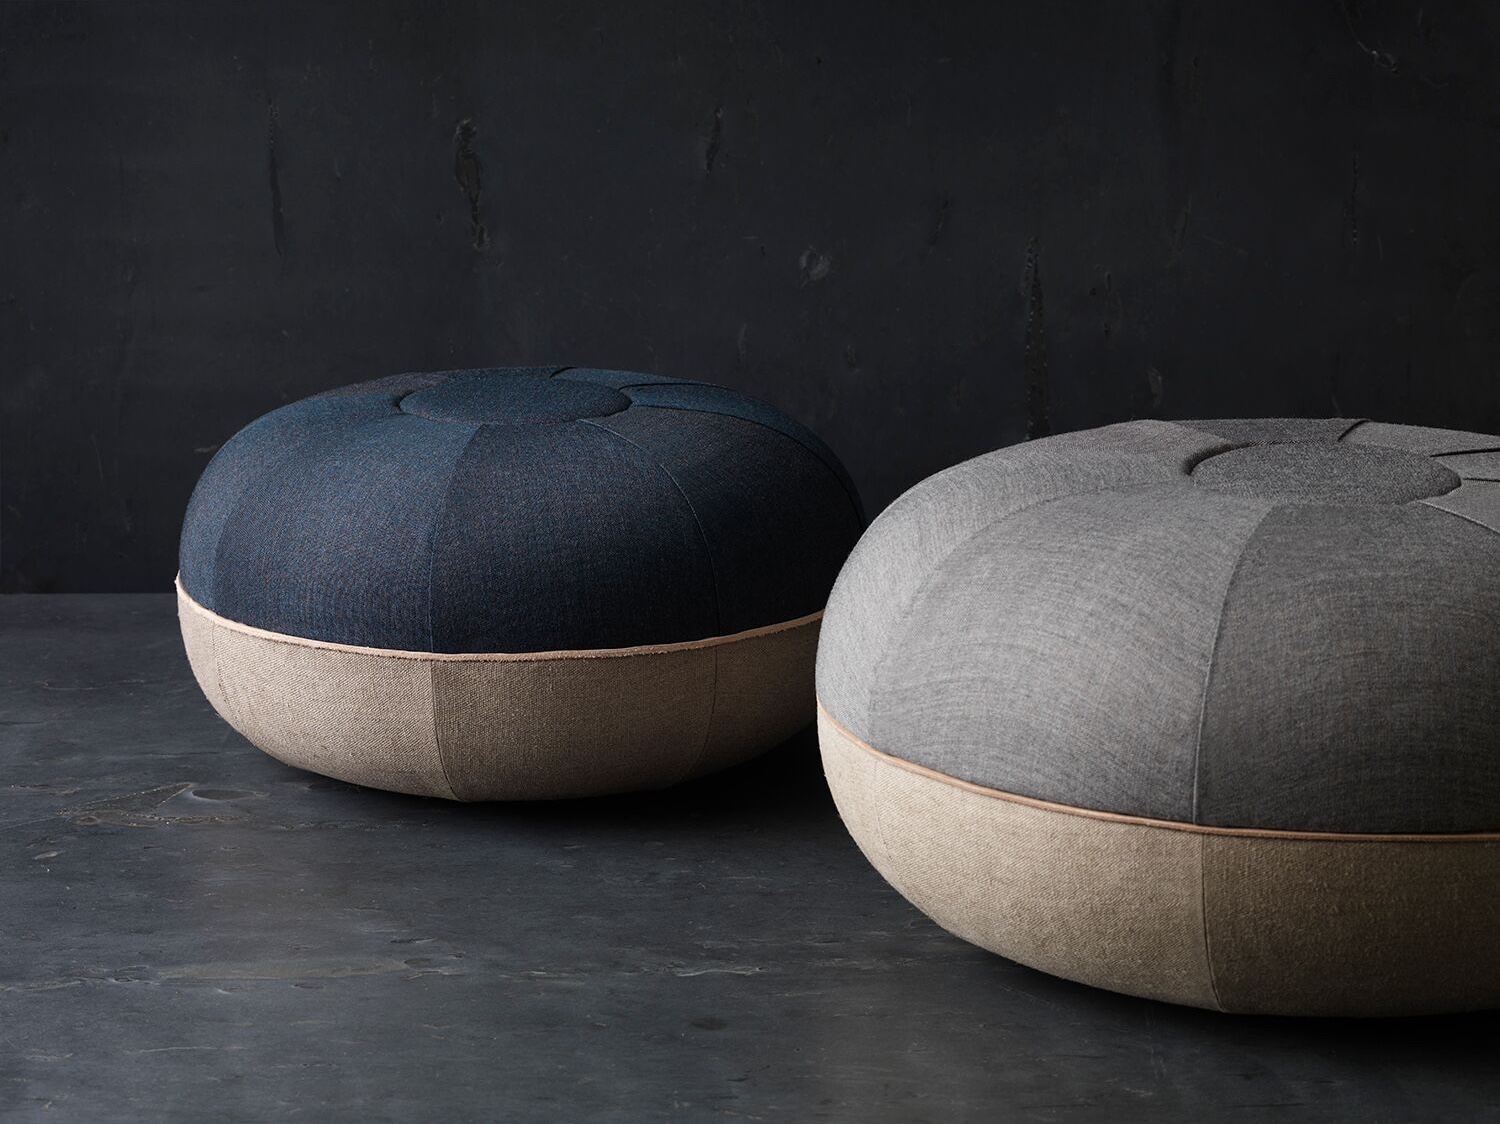 PoufsbyCecilie Manz for Objects.